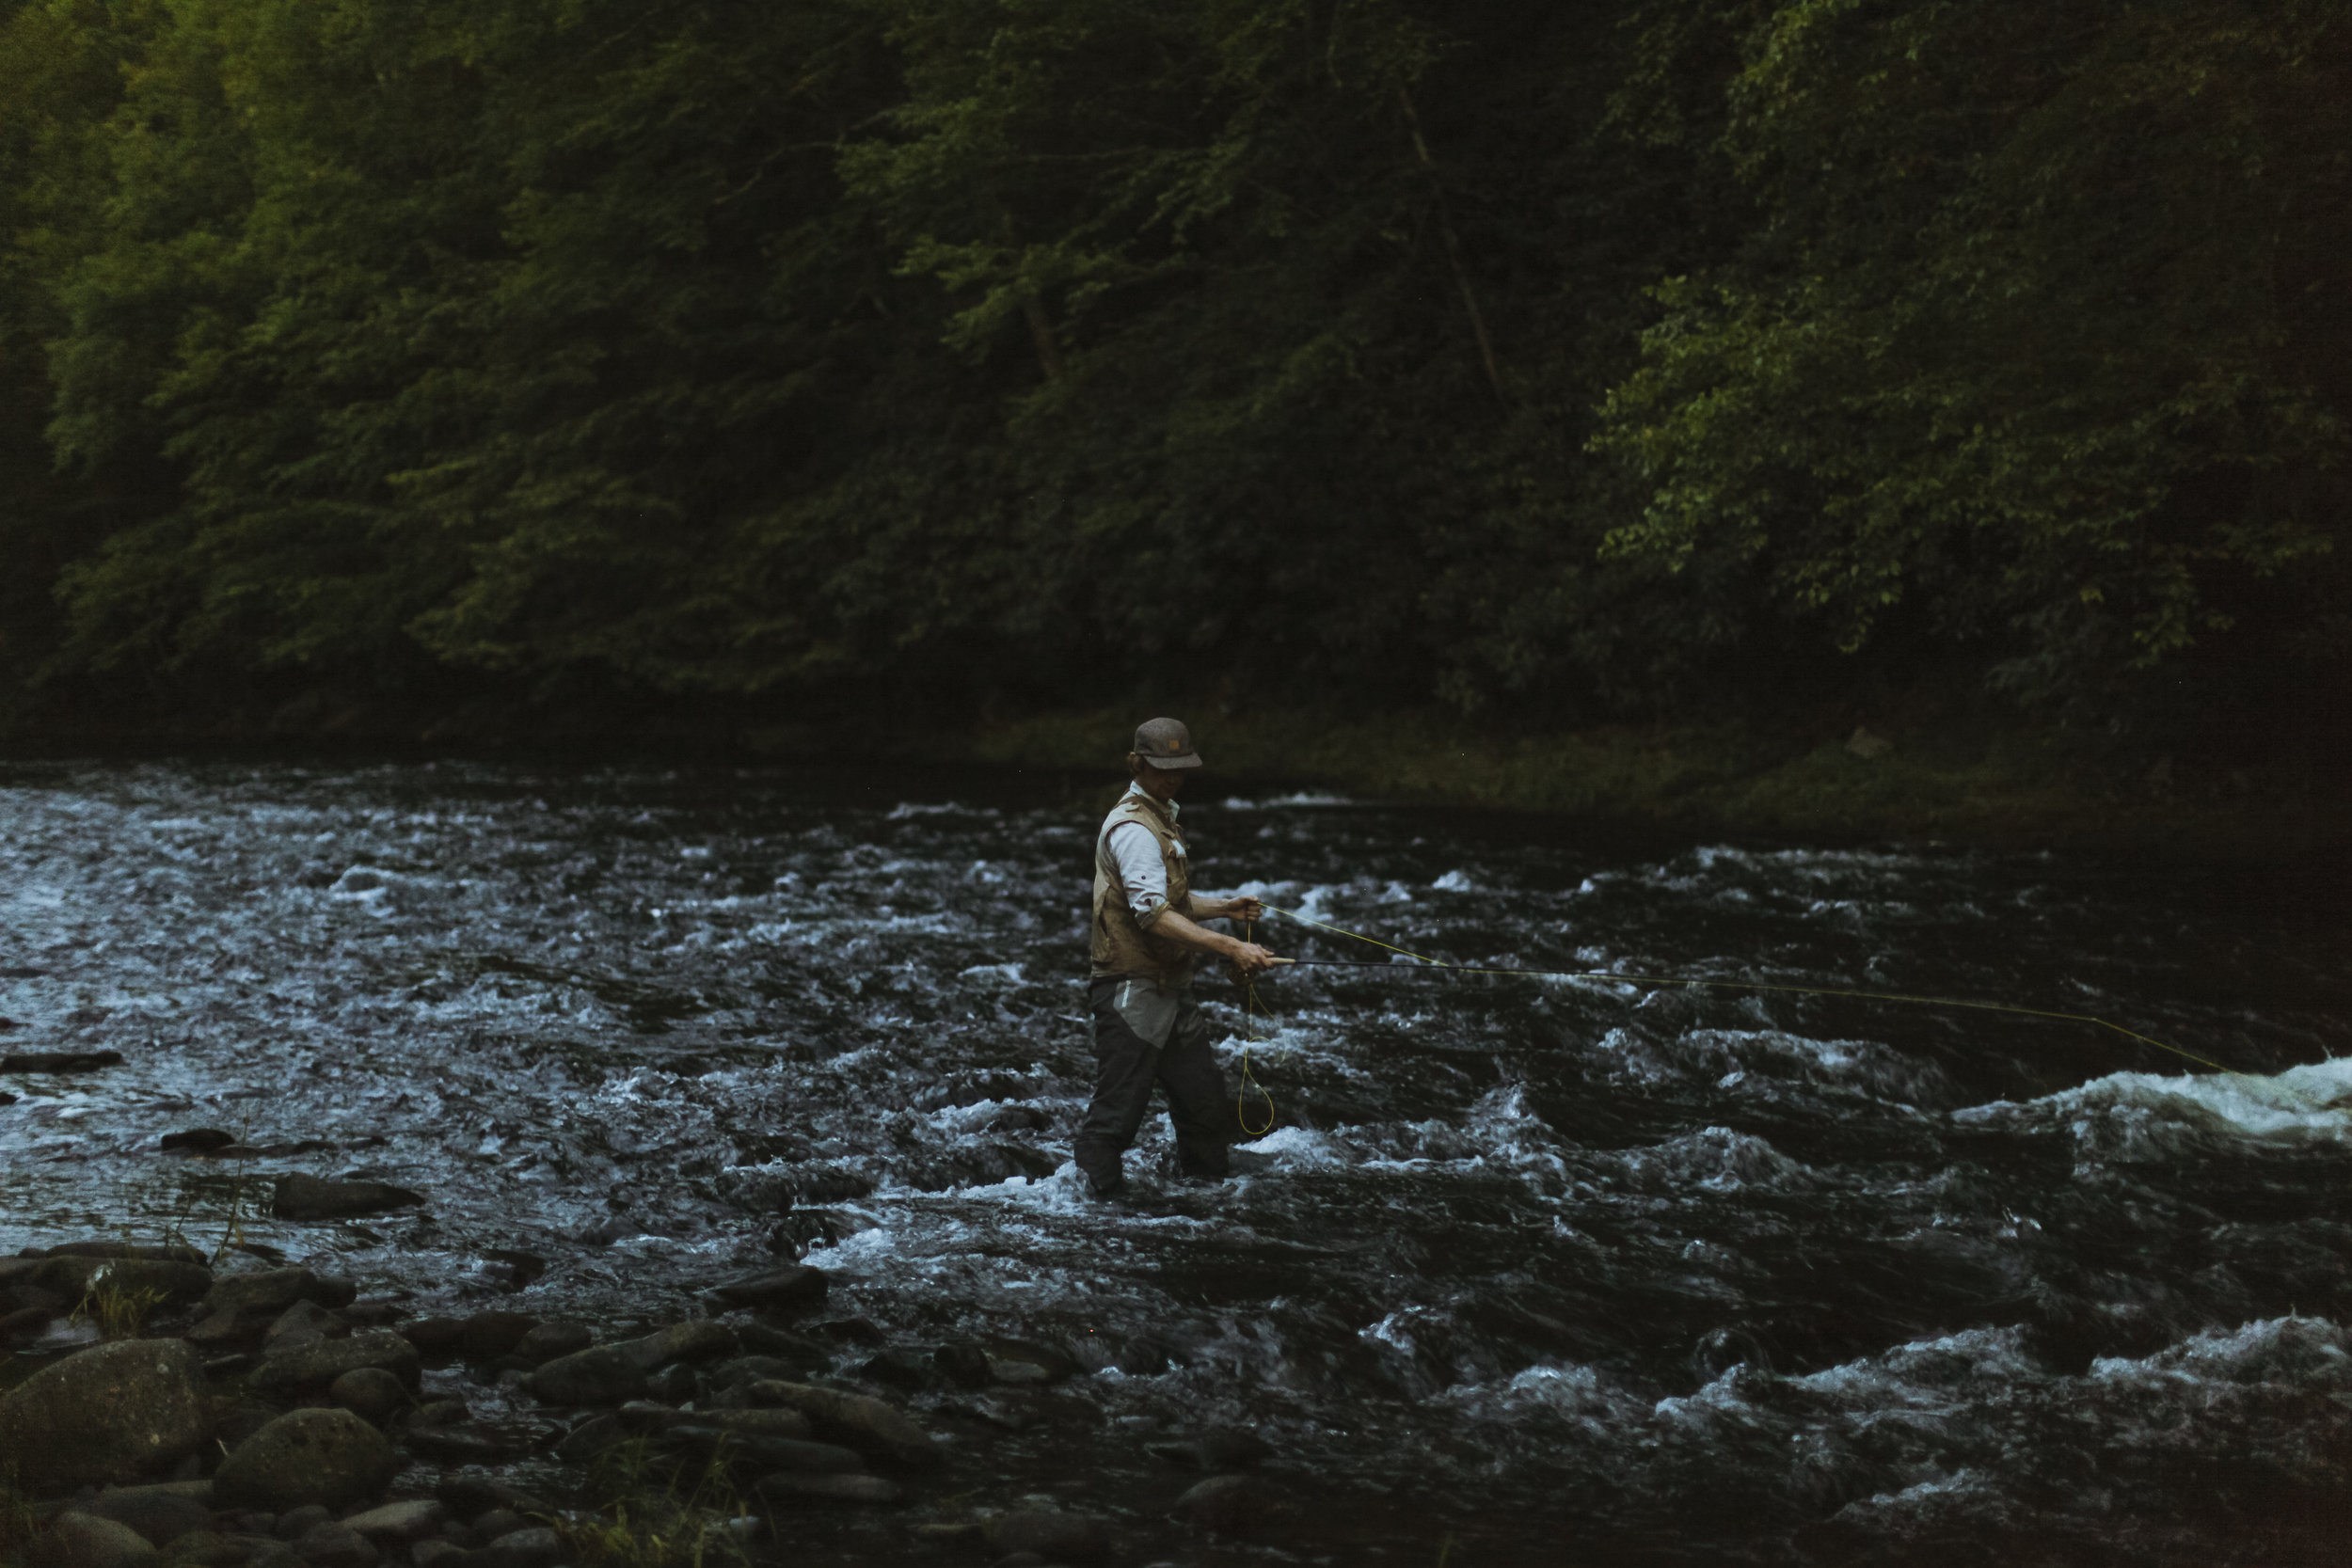 Flyfishing-5.JPG